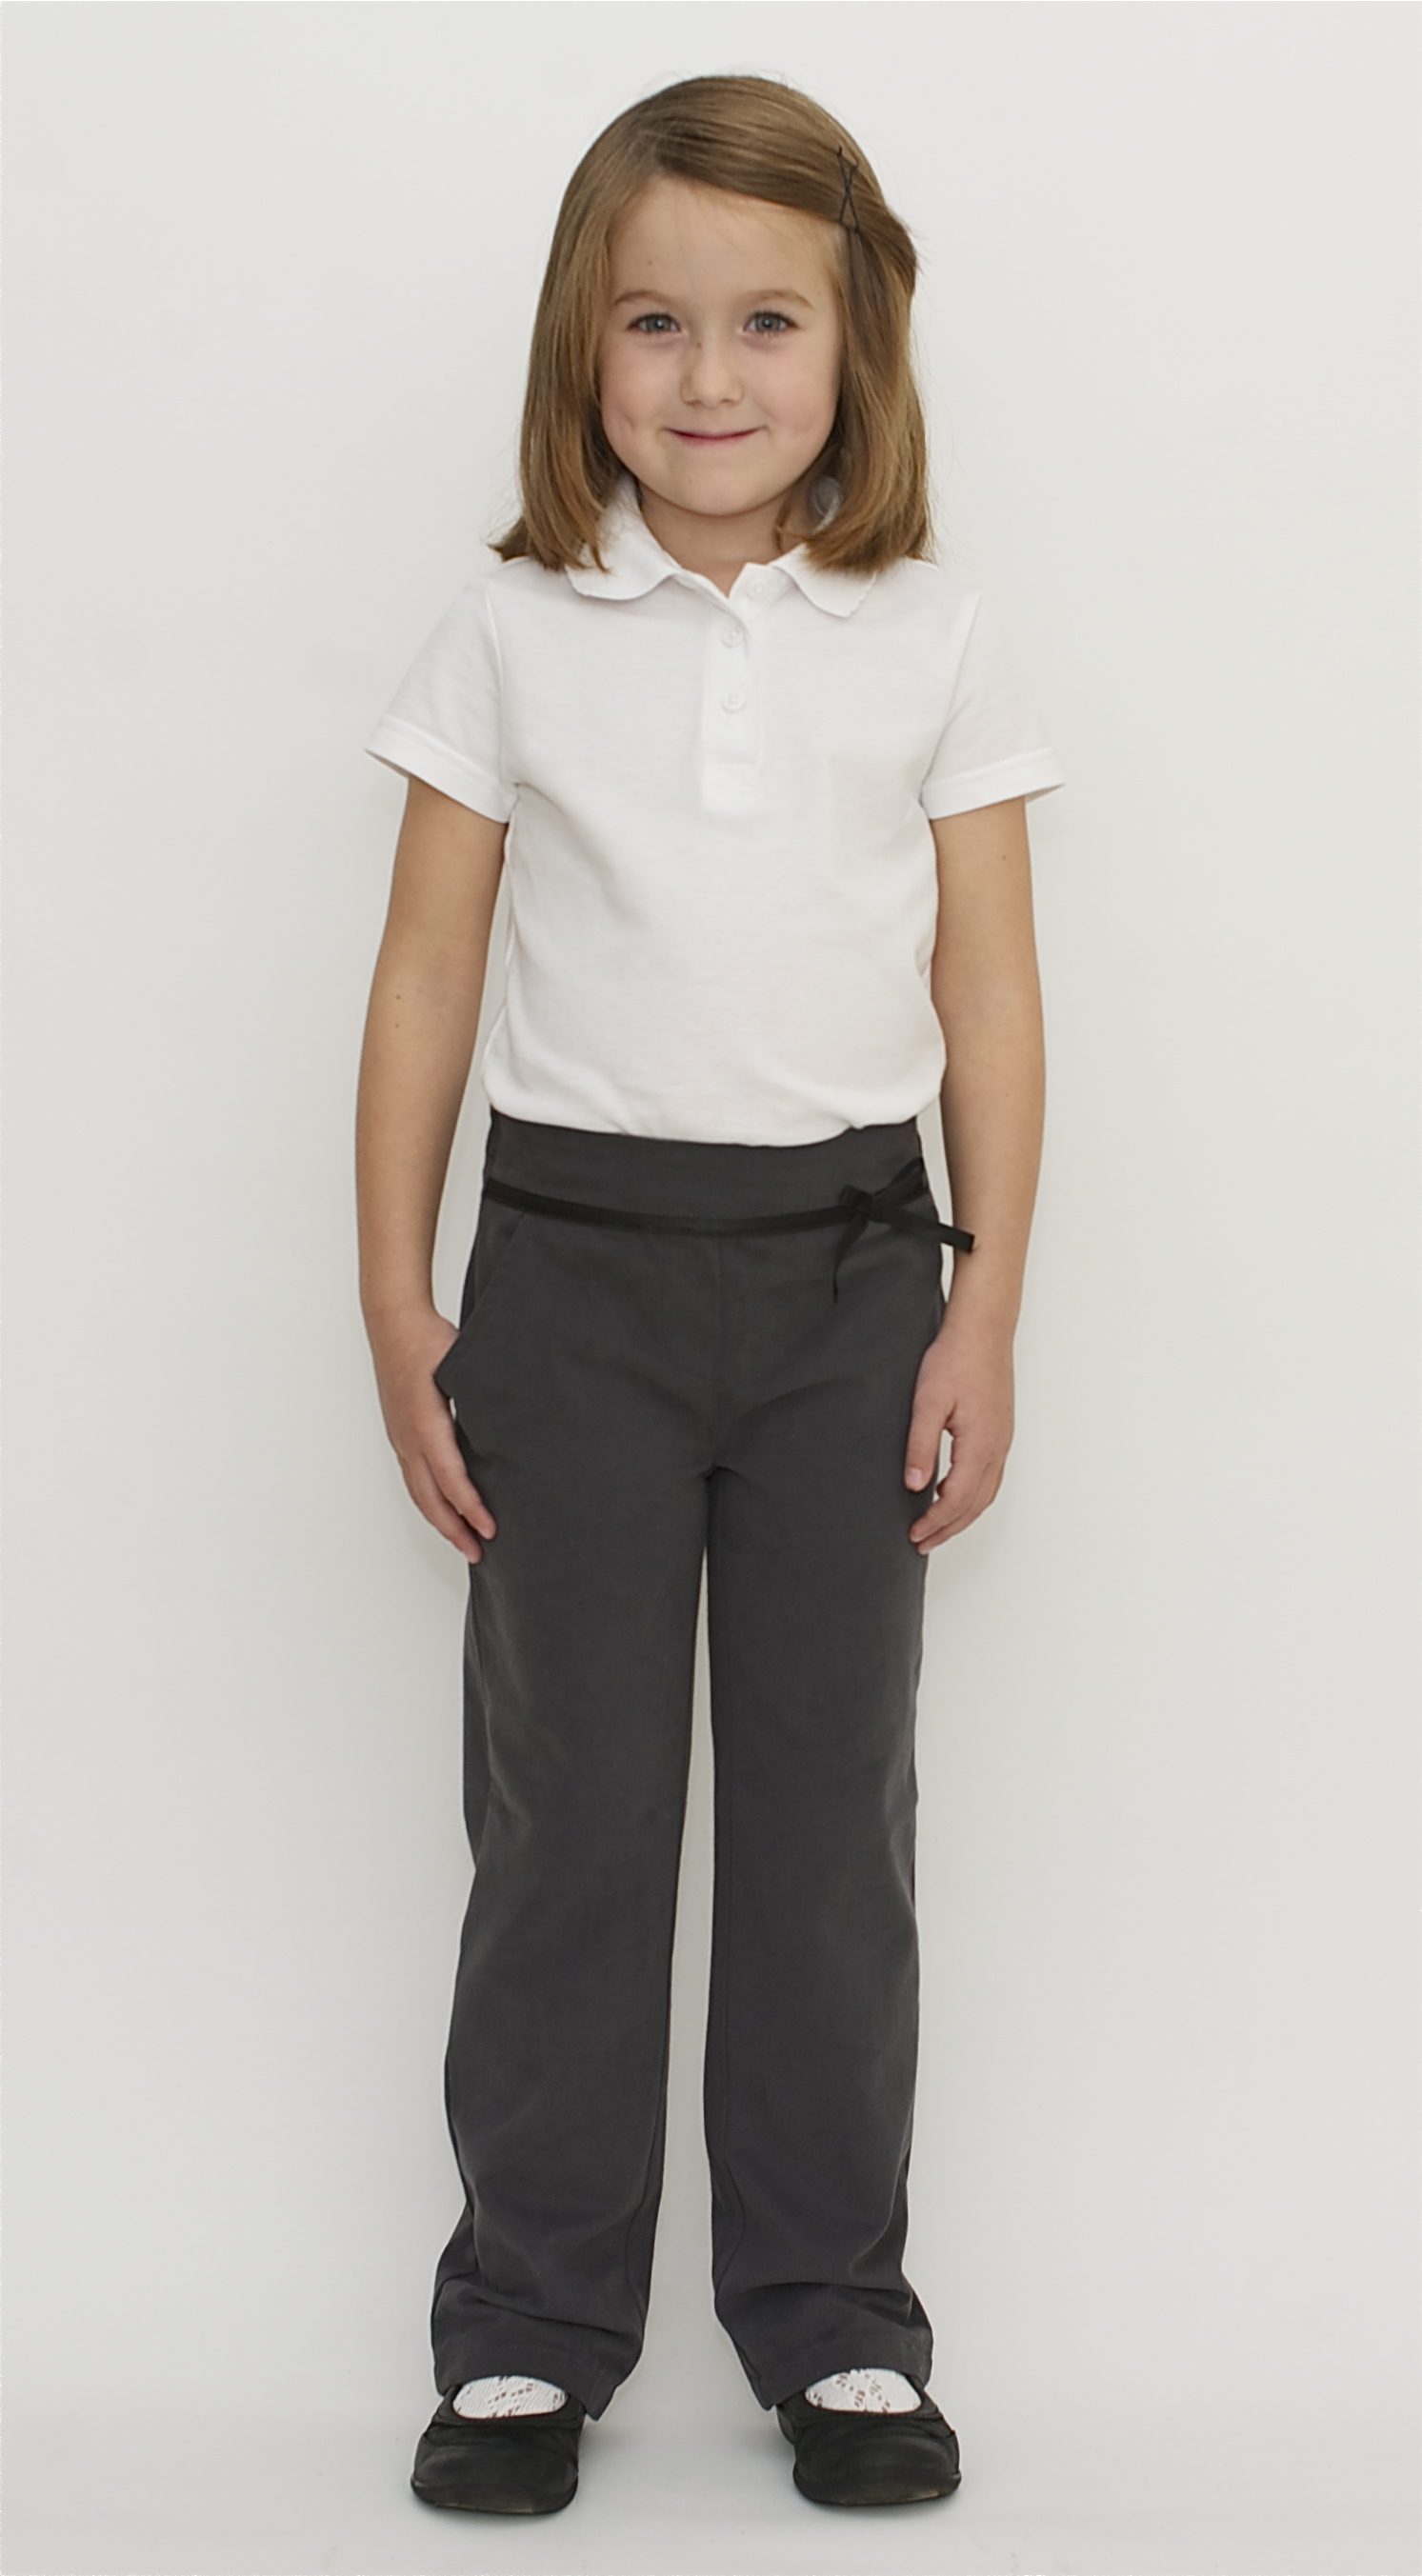 Read all Girls Black Straight Leg School Trousers reviews Girls Black Straight Leg School Trousers is rated out of 5 by Rated 4 out of 5 by Denise74 from Nice trousers Fit true to size, look lovely on, very smart, nice for school, wash and dry lovely/5(13).